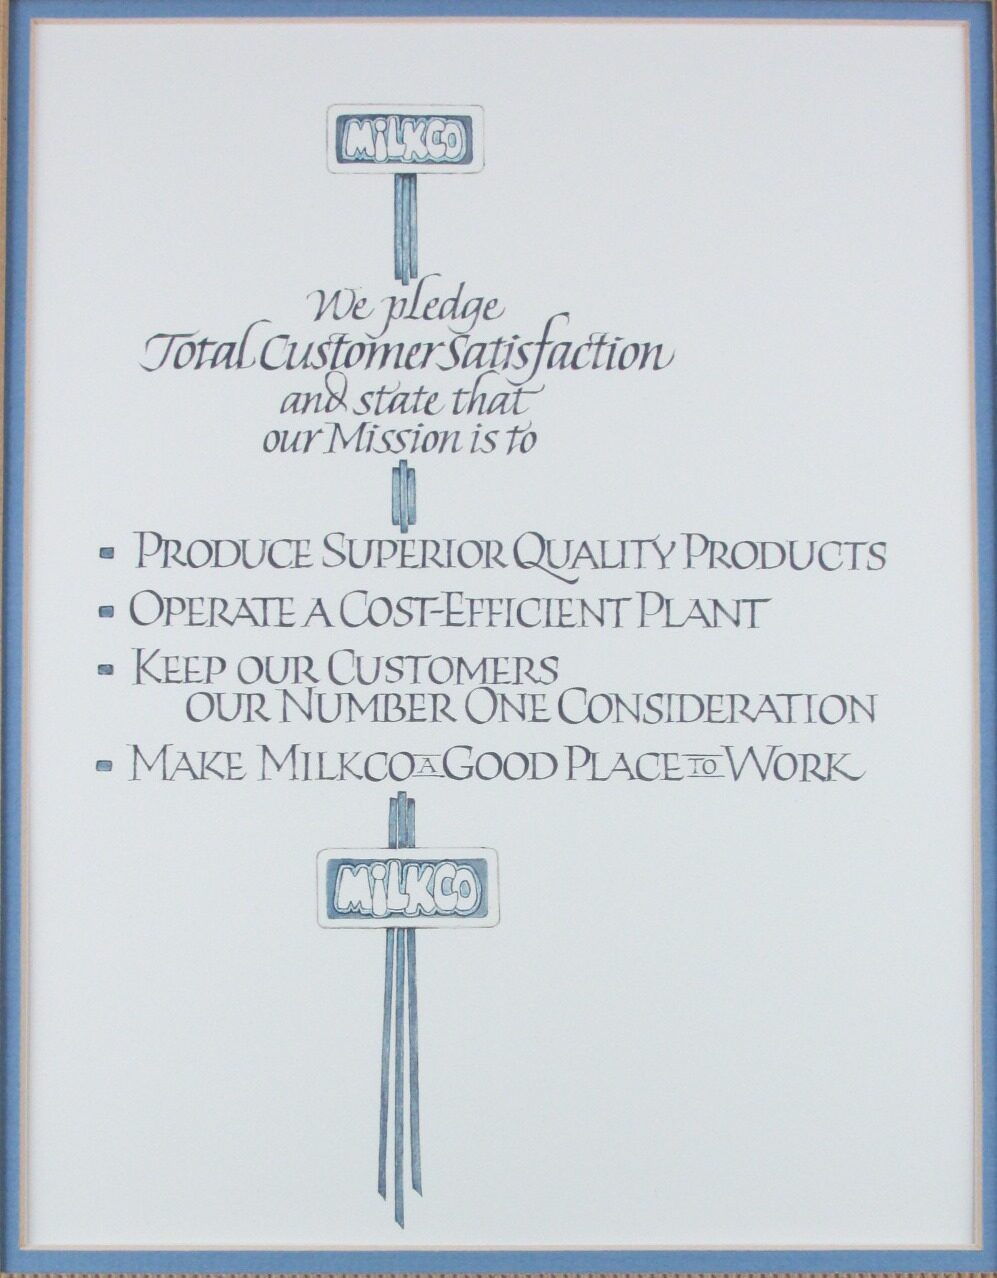 Milkco Mission Statement